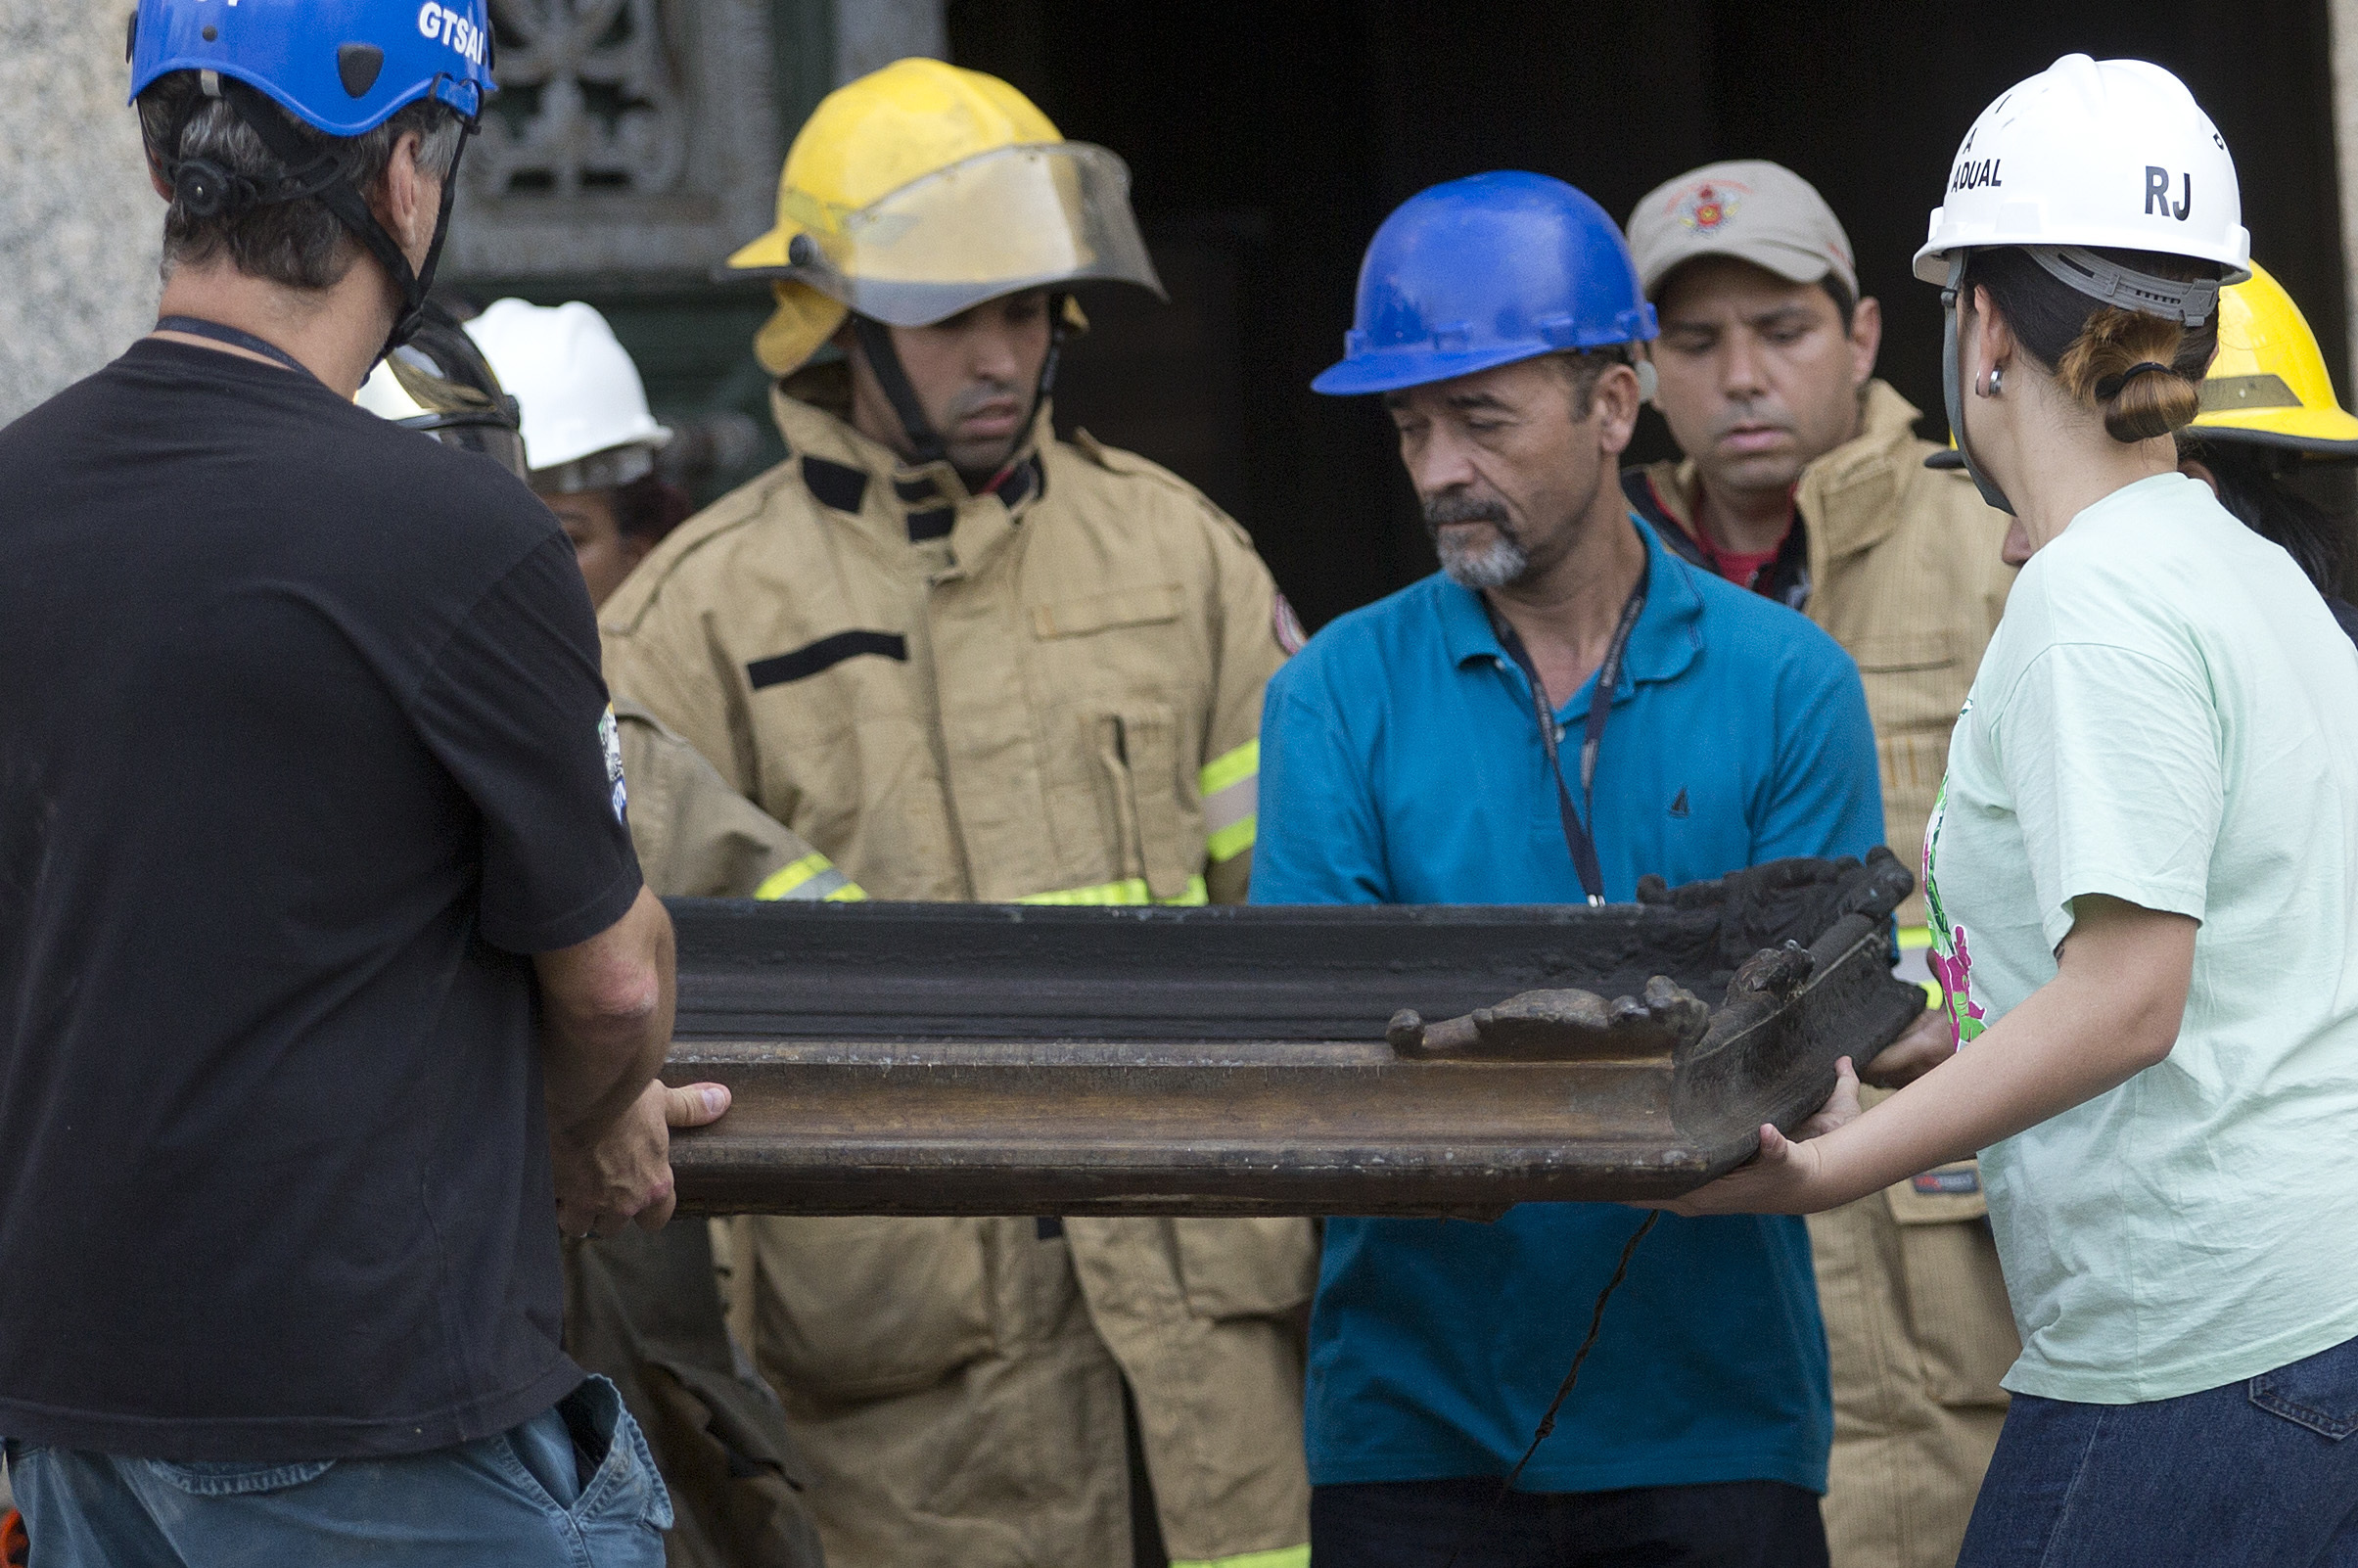 Firefighters and museum personnel carry a burnt painting from National Museum of Rio de Janeiro in Brazil on Sept. 3, 2018 following a fire.